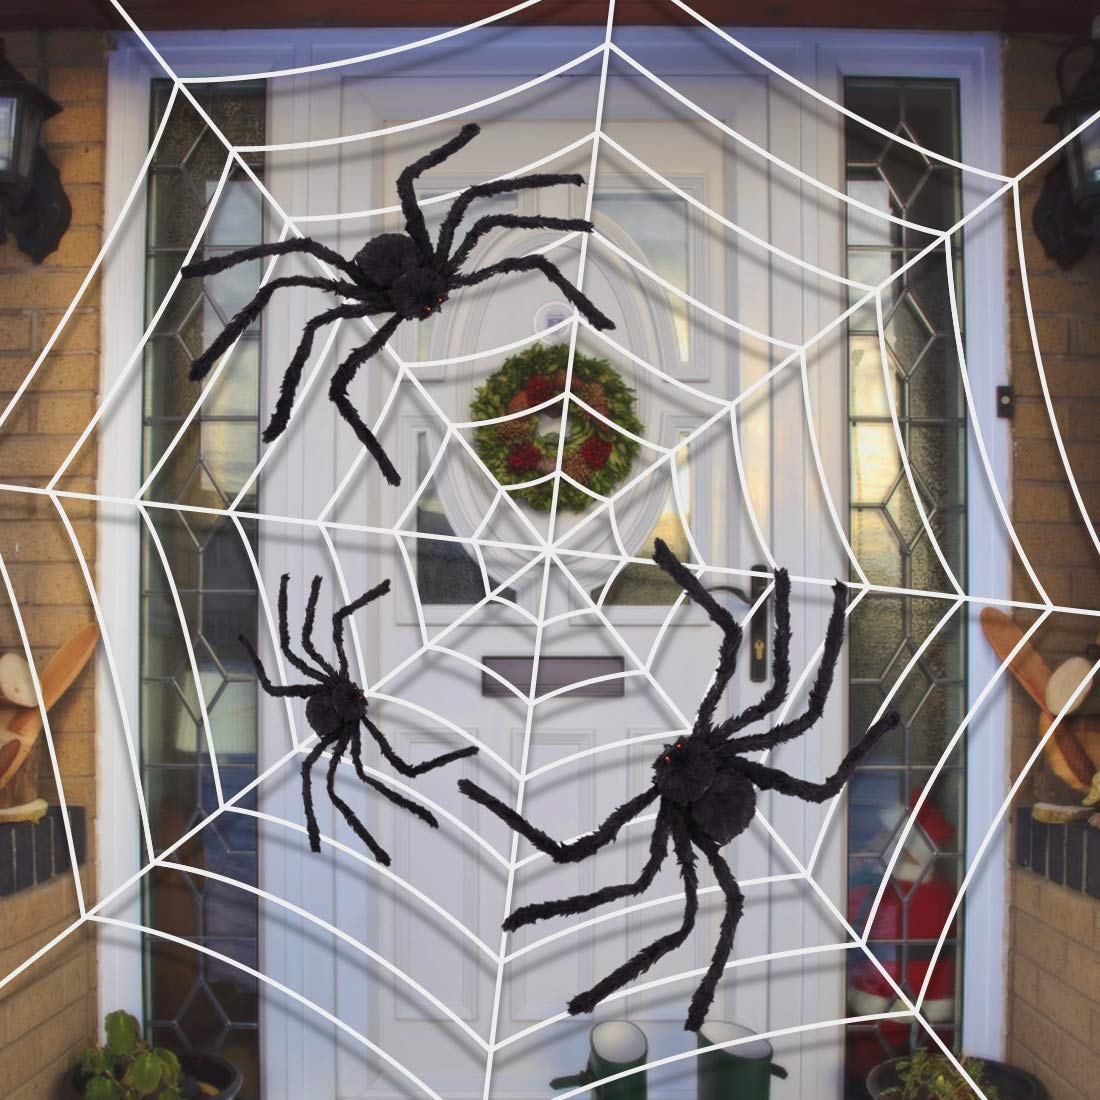 Giant Spider Web With Three Realistic Looking Hairy Spiders   Outdoor  Halloween Decorations Props Halloween DIY